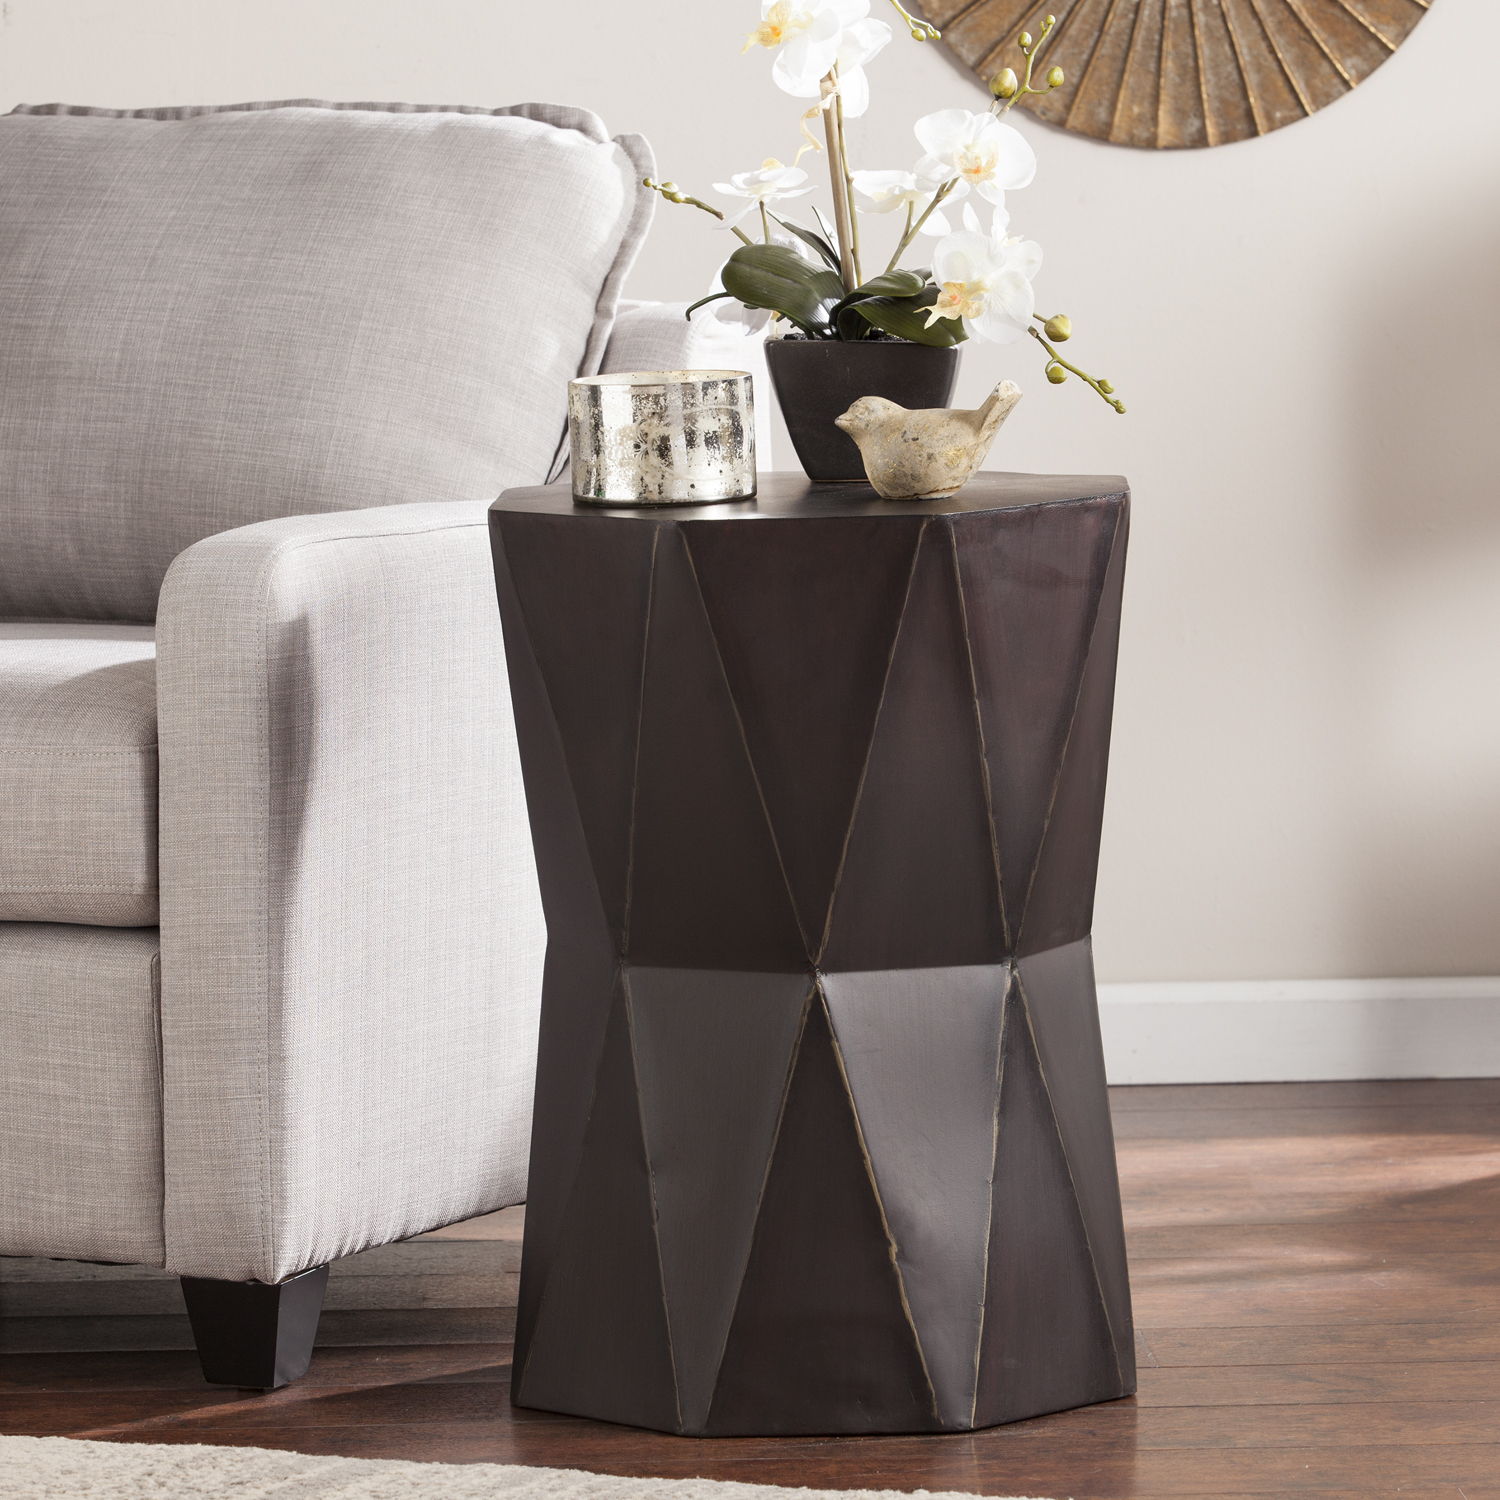 tremont accent table antique black living room orange lamp nautical bedroom furniture maritime pendant stand umbrella crystal and brass lamps ethan allen round end oval wood gray